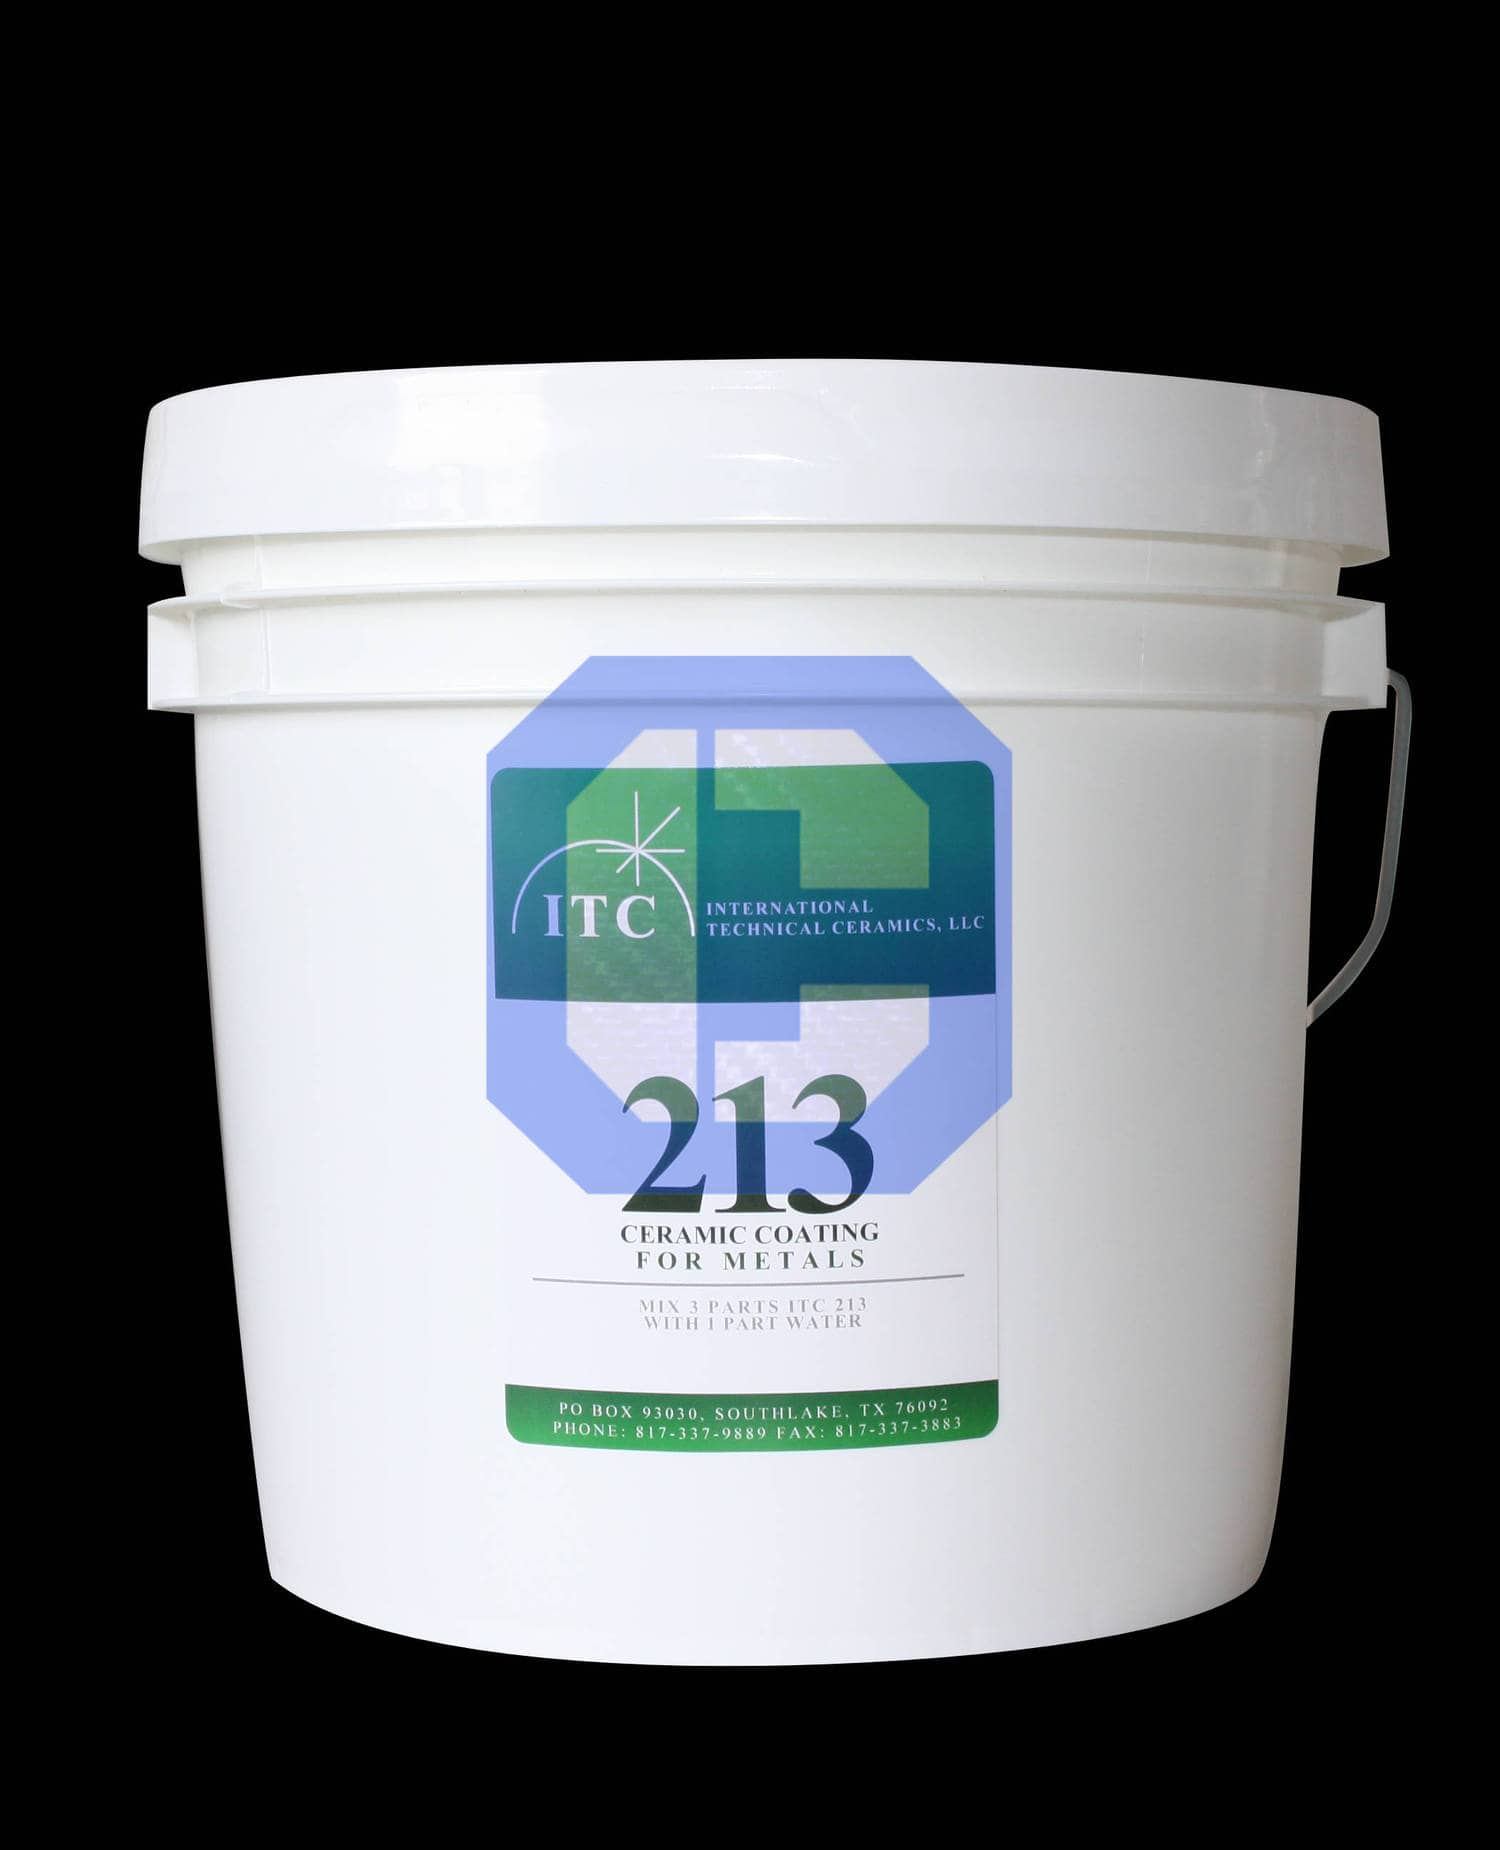 ITC-213 Coating from CeraMaterials